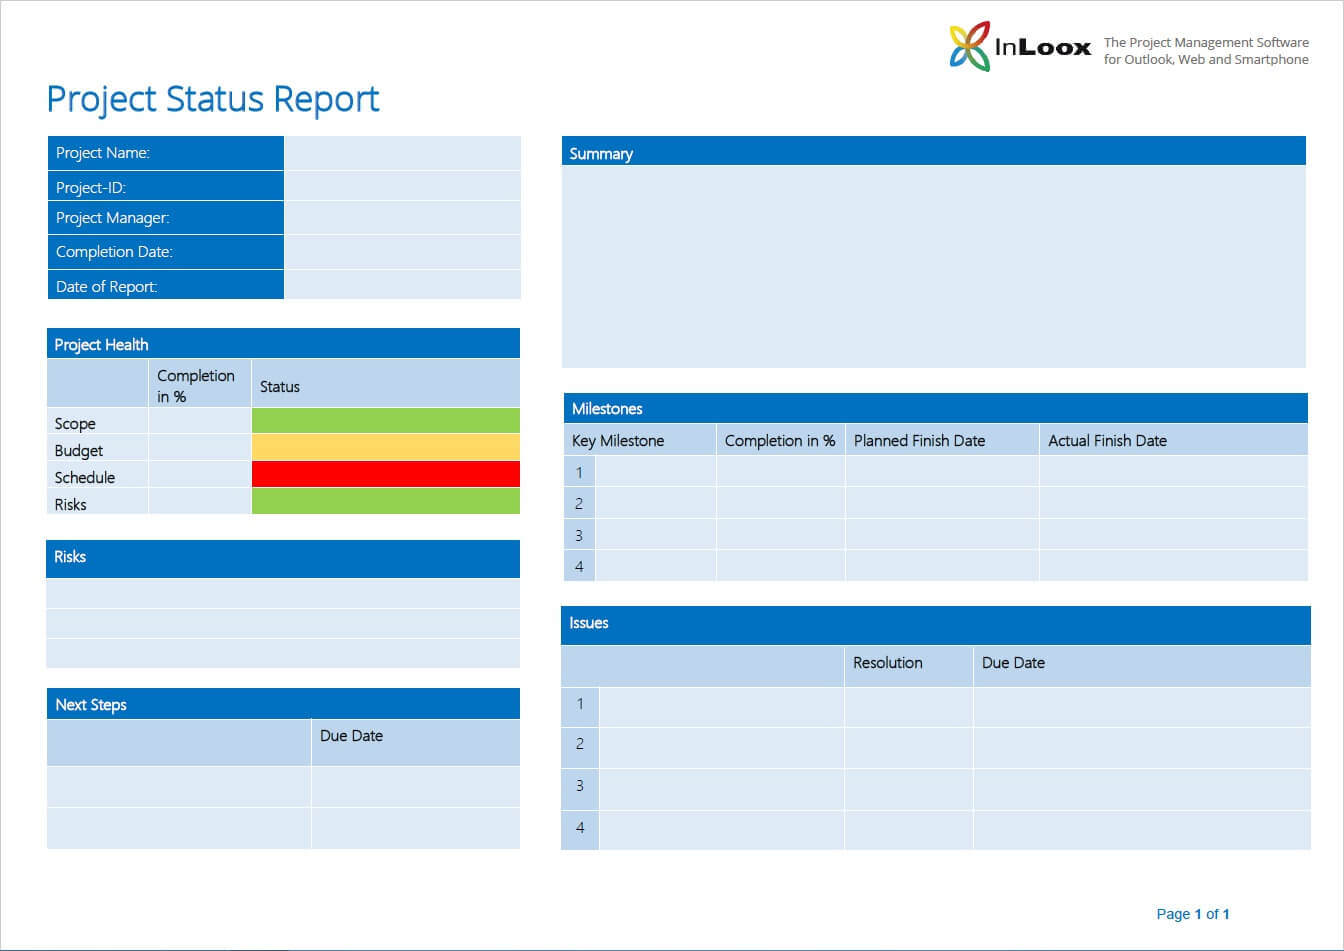 034 Project Status Report Template Ideas Imposing Powerpoint with One Page Project Status Report Template